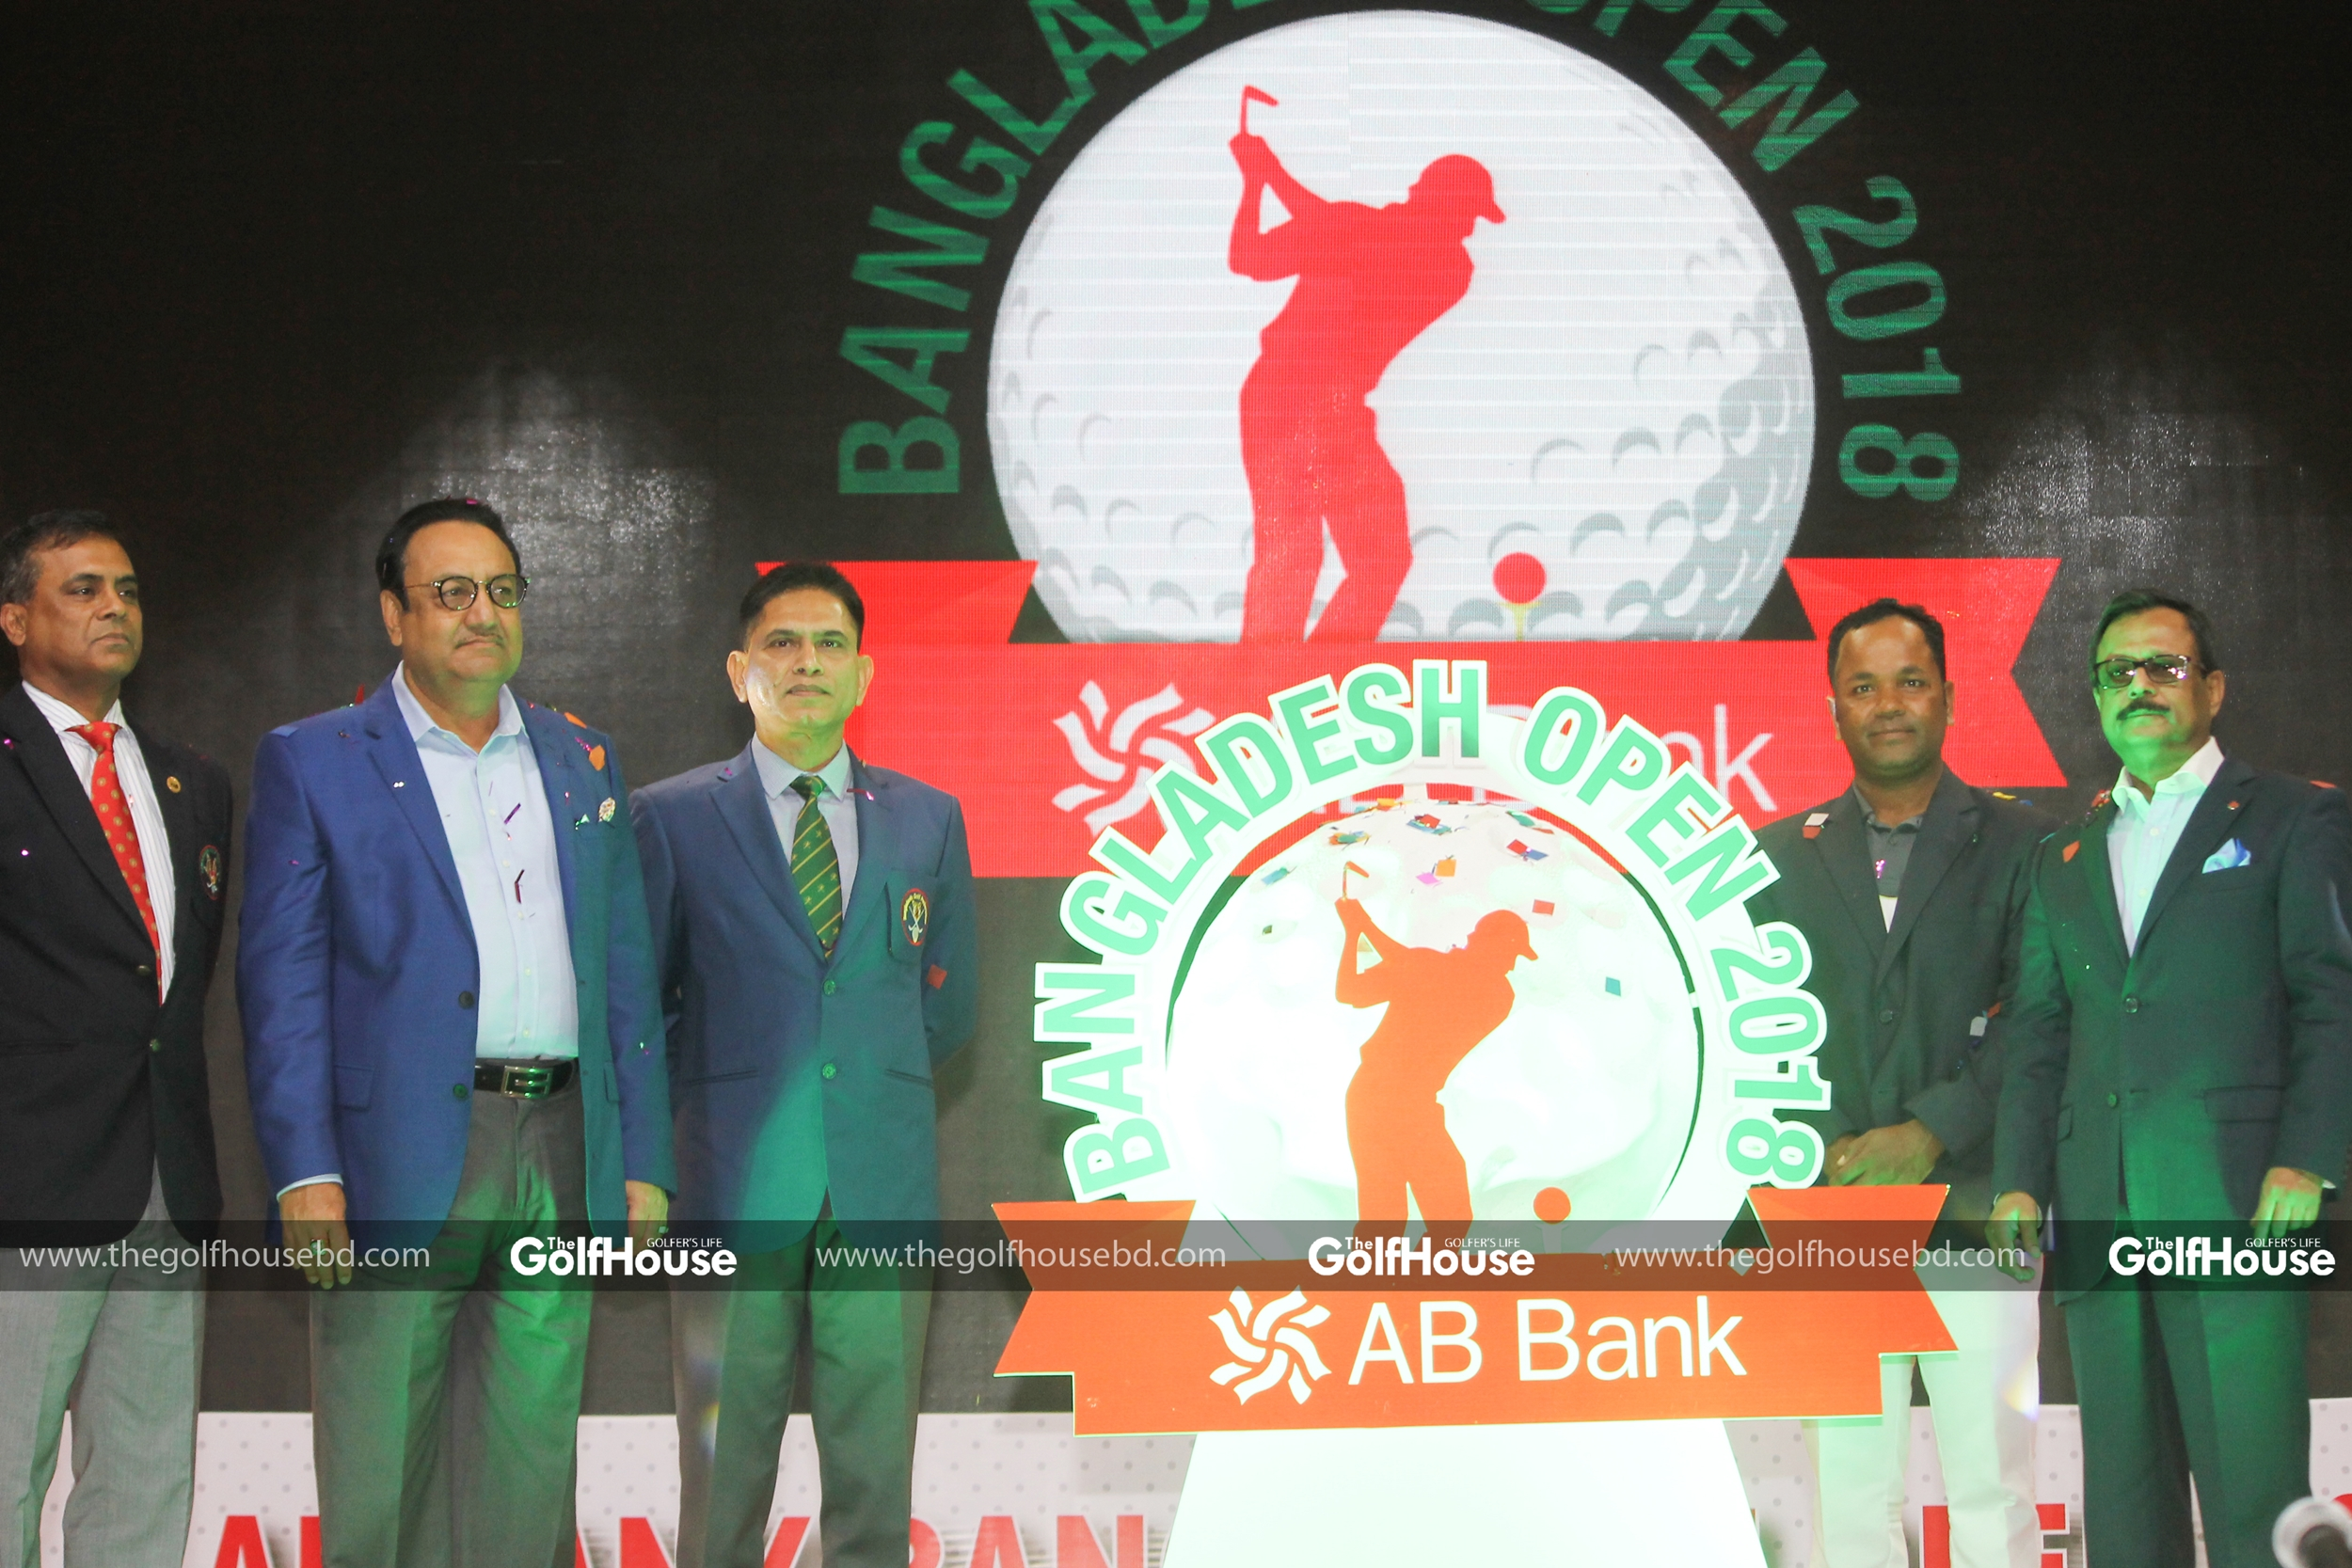 Chief_guest_and_BCB_president_Nazmul_Hassan_papon_(C)_unveils_the_AB_Bank_Bangladesh_Open_trophy_during_a_ceremony_at_the_kurmitola_Golf_Club_recently.